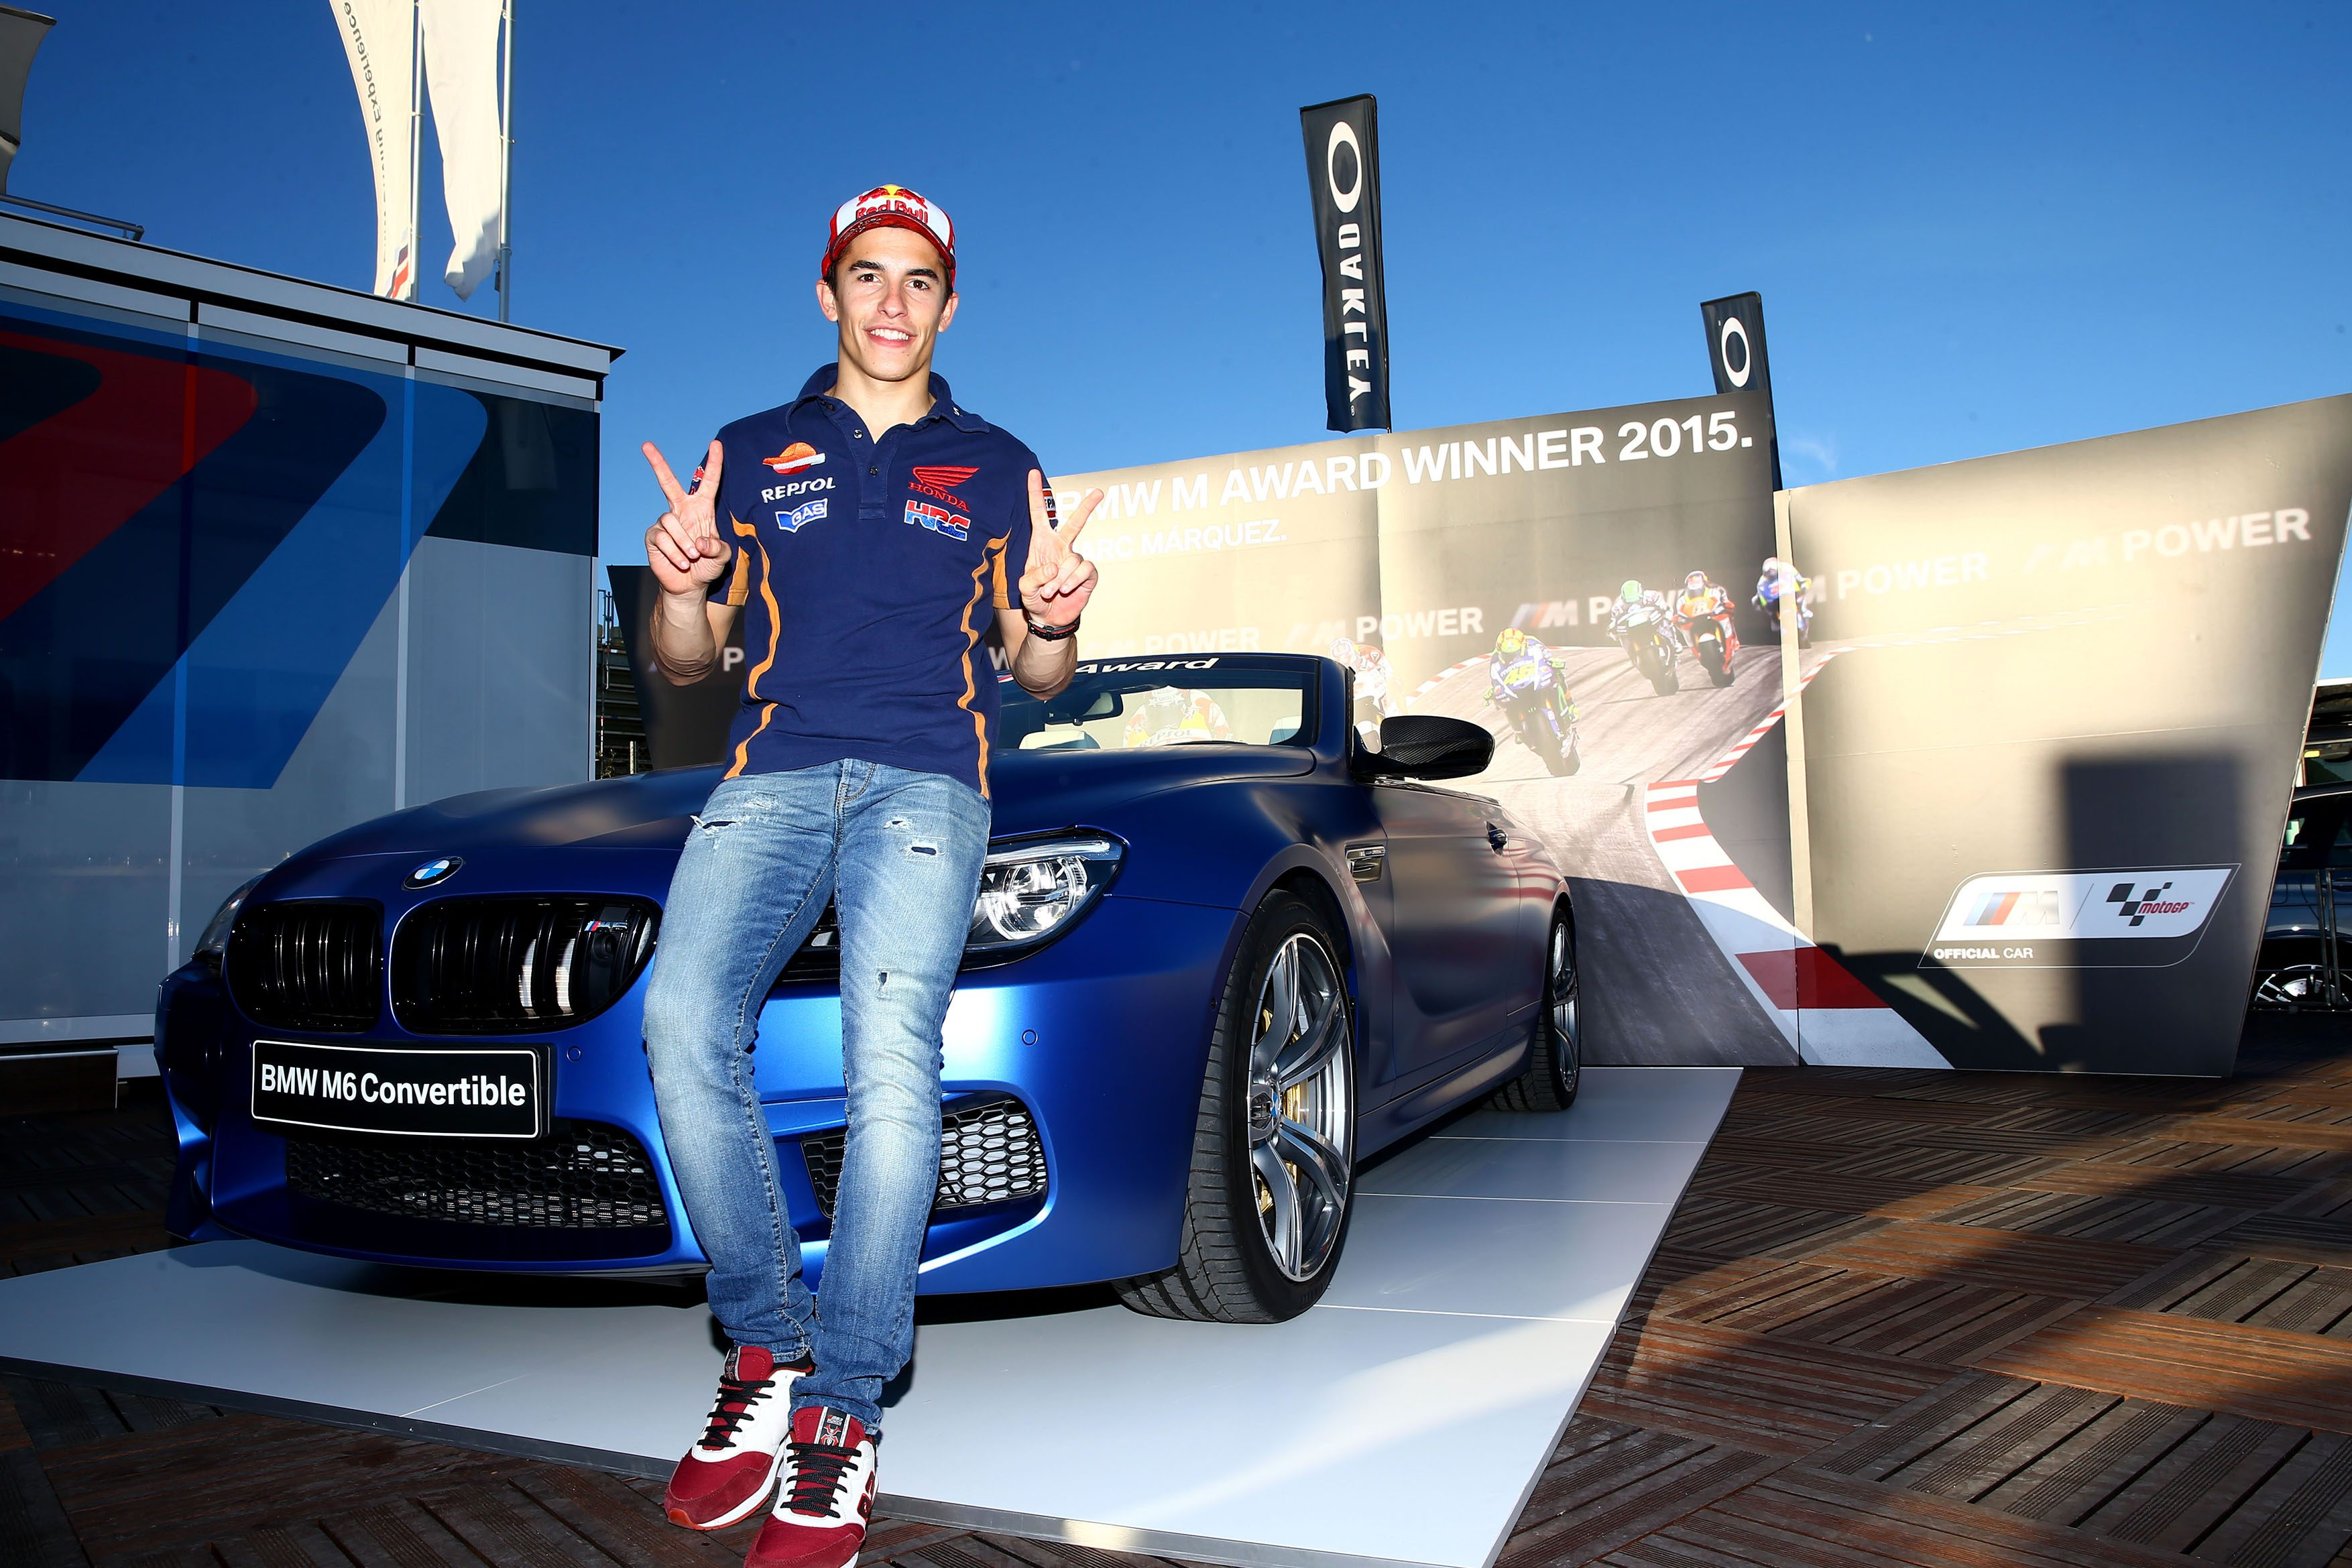 https://www.autoblog.nl/gallery/BMW/0_Divers/M6_voor_Marc_Marquez/P90204288_highRes_bmw-m-award-2015-11-.jpg